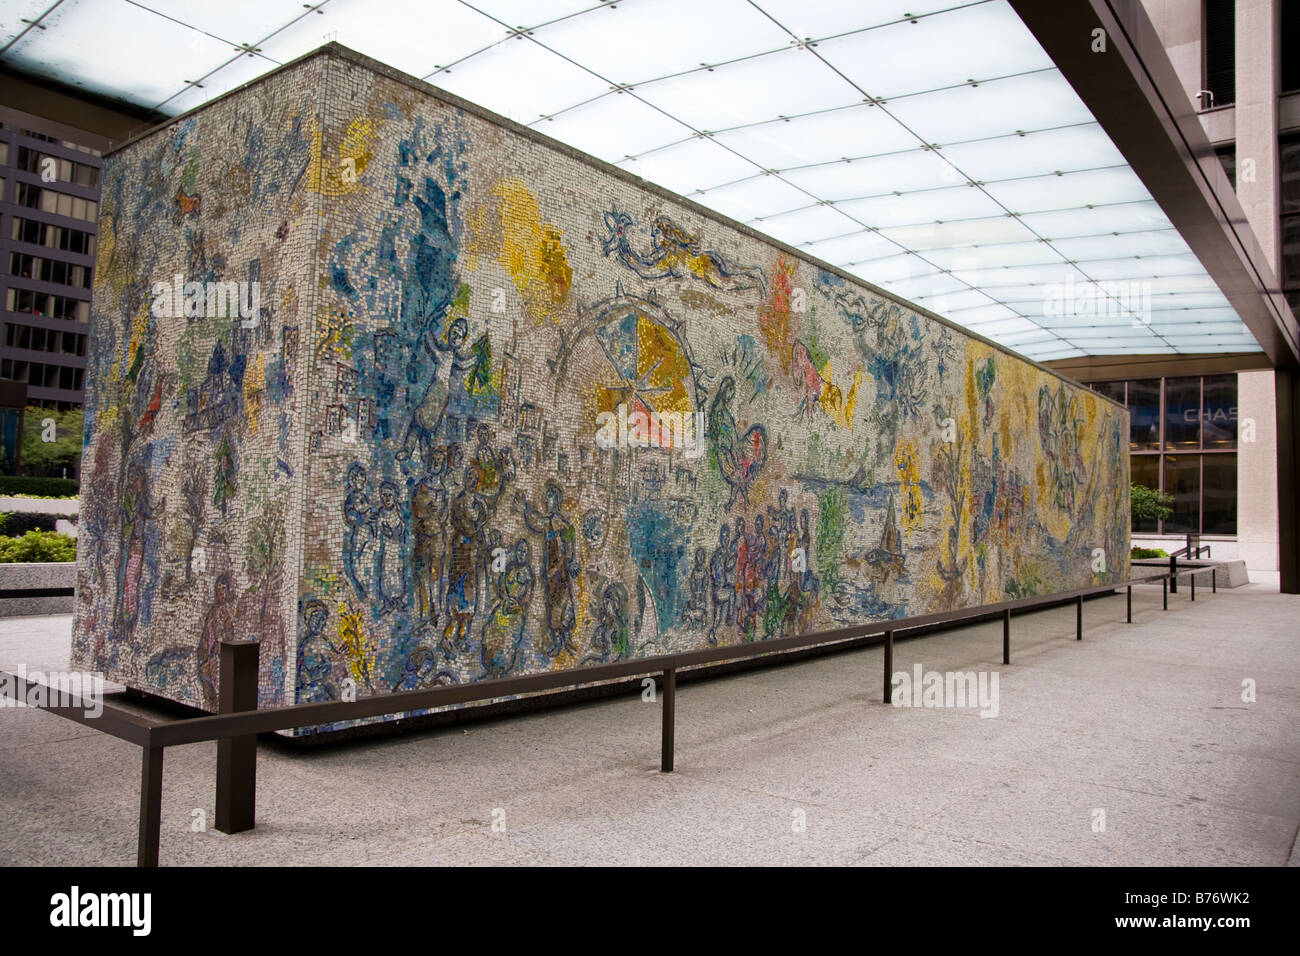 Marc chagall mural in downtown chicago il stock photo for Mural in chicago illinois